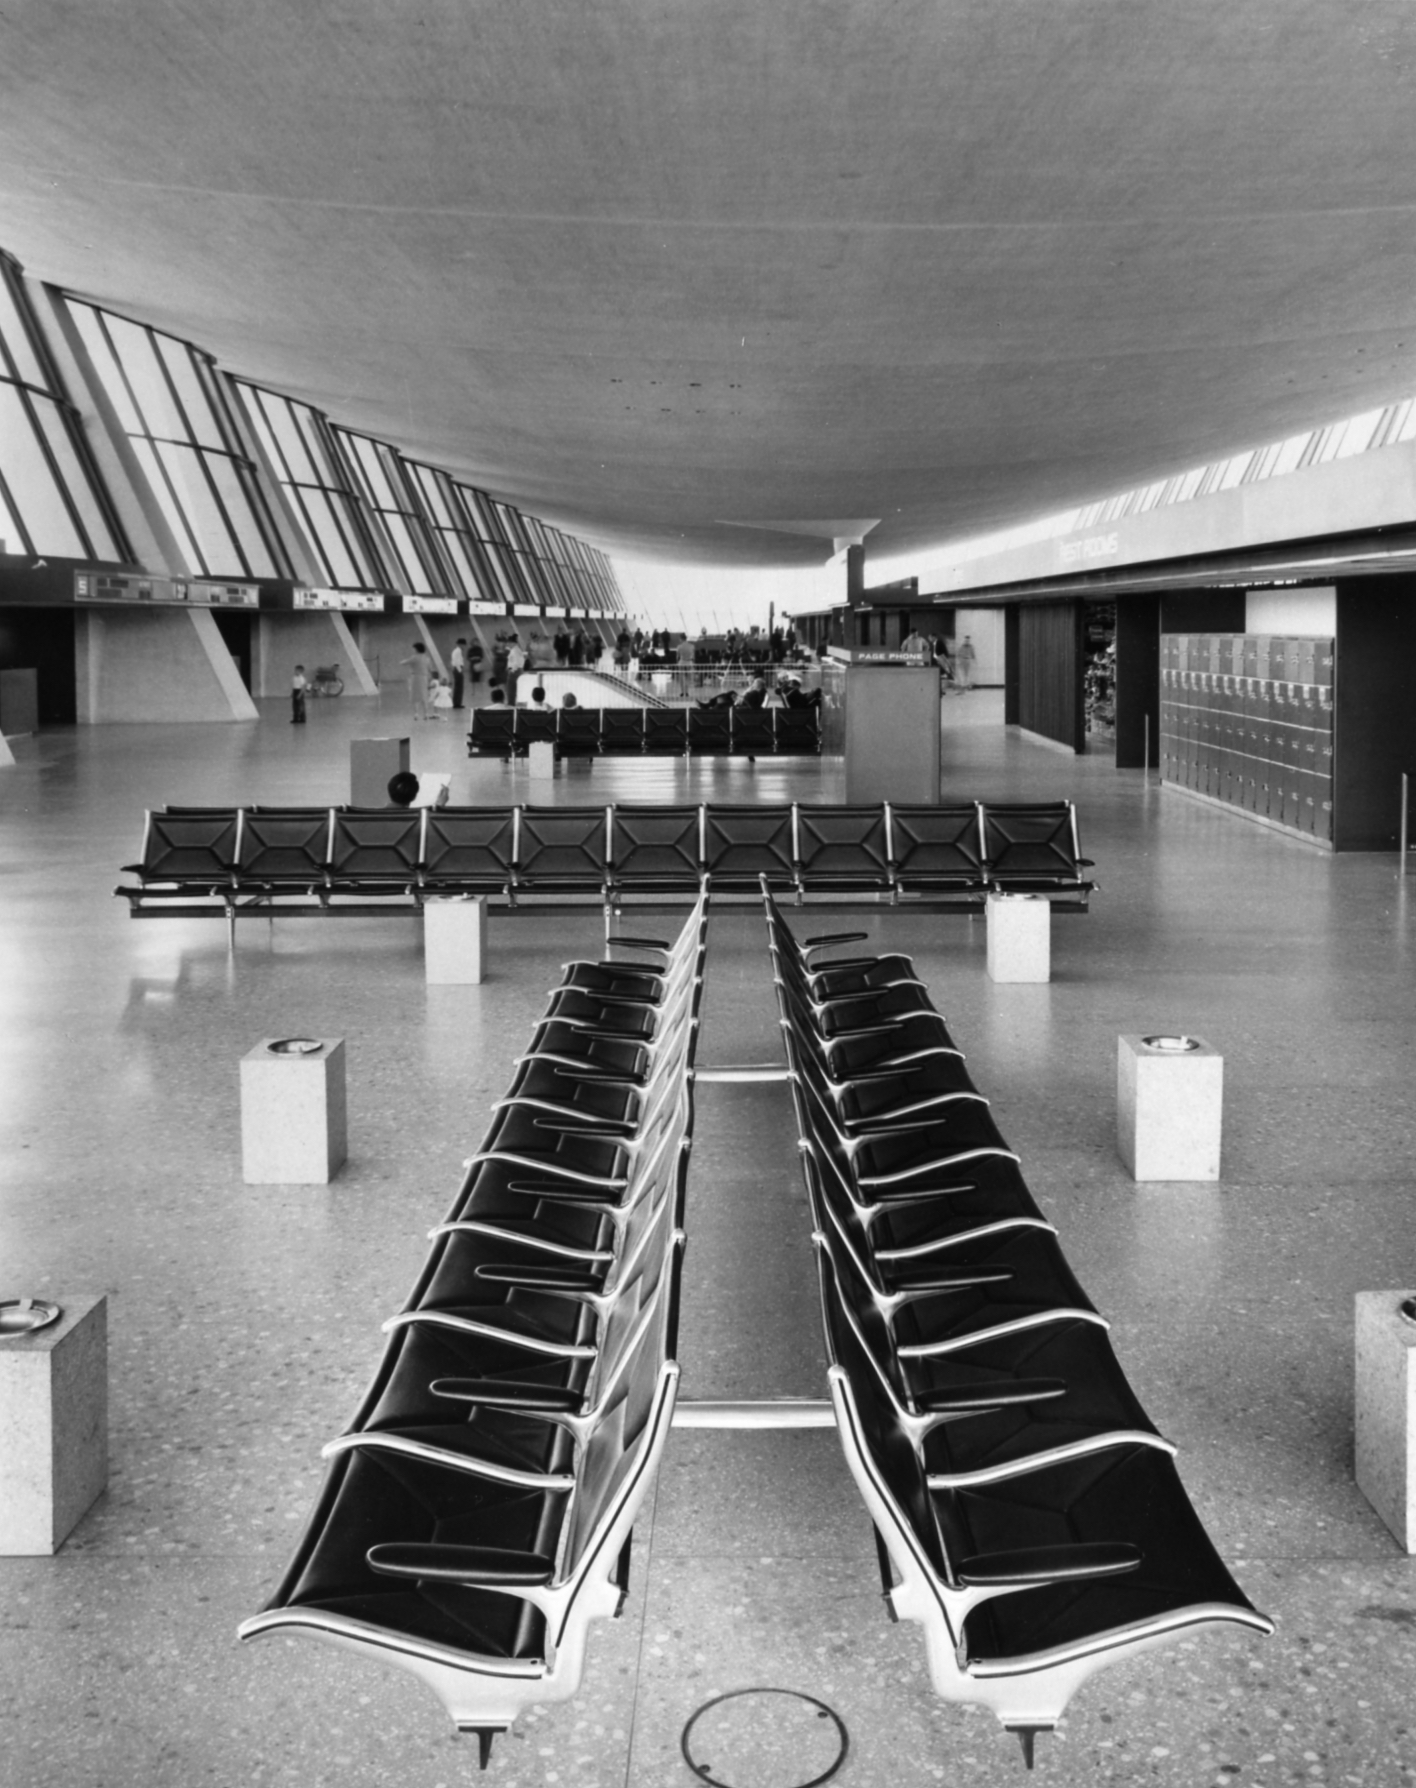 Eames Tandem Sling Seating within Eero Saarinen's terminal building at IAD. Image EAMES Office